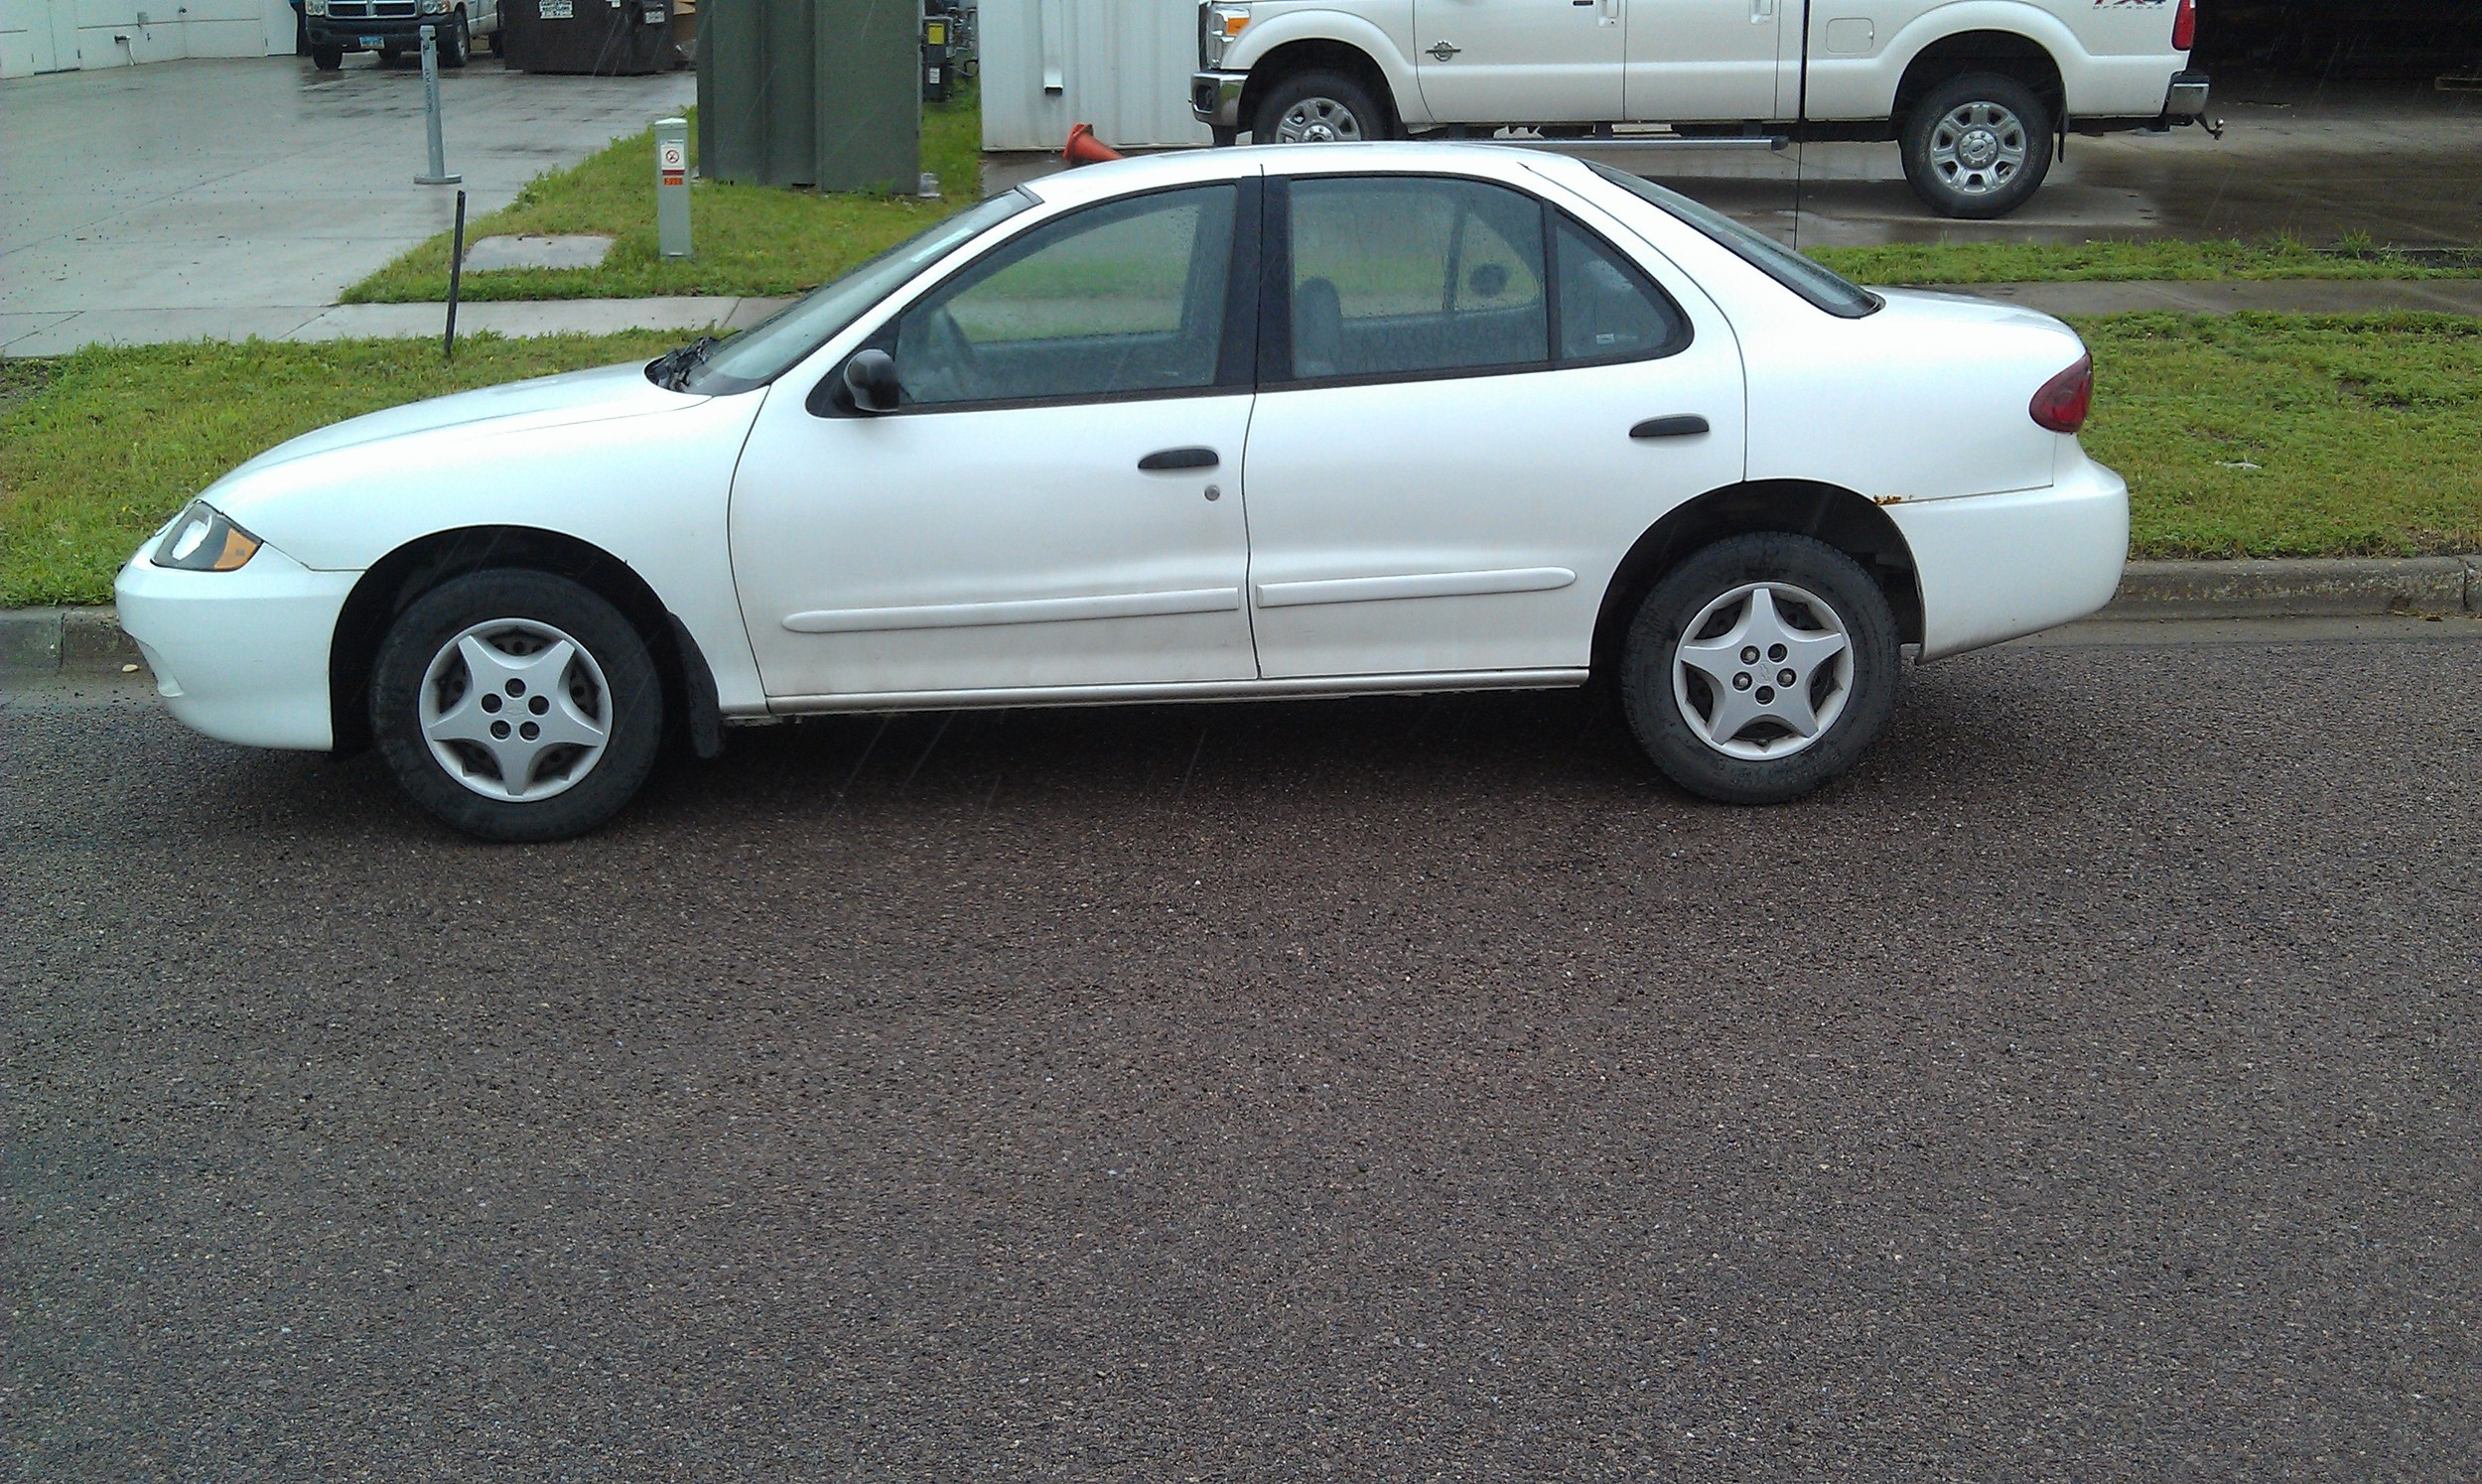 2003 chevy cavalier sold good news auto squarespace